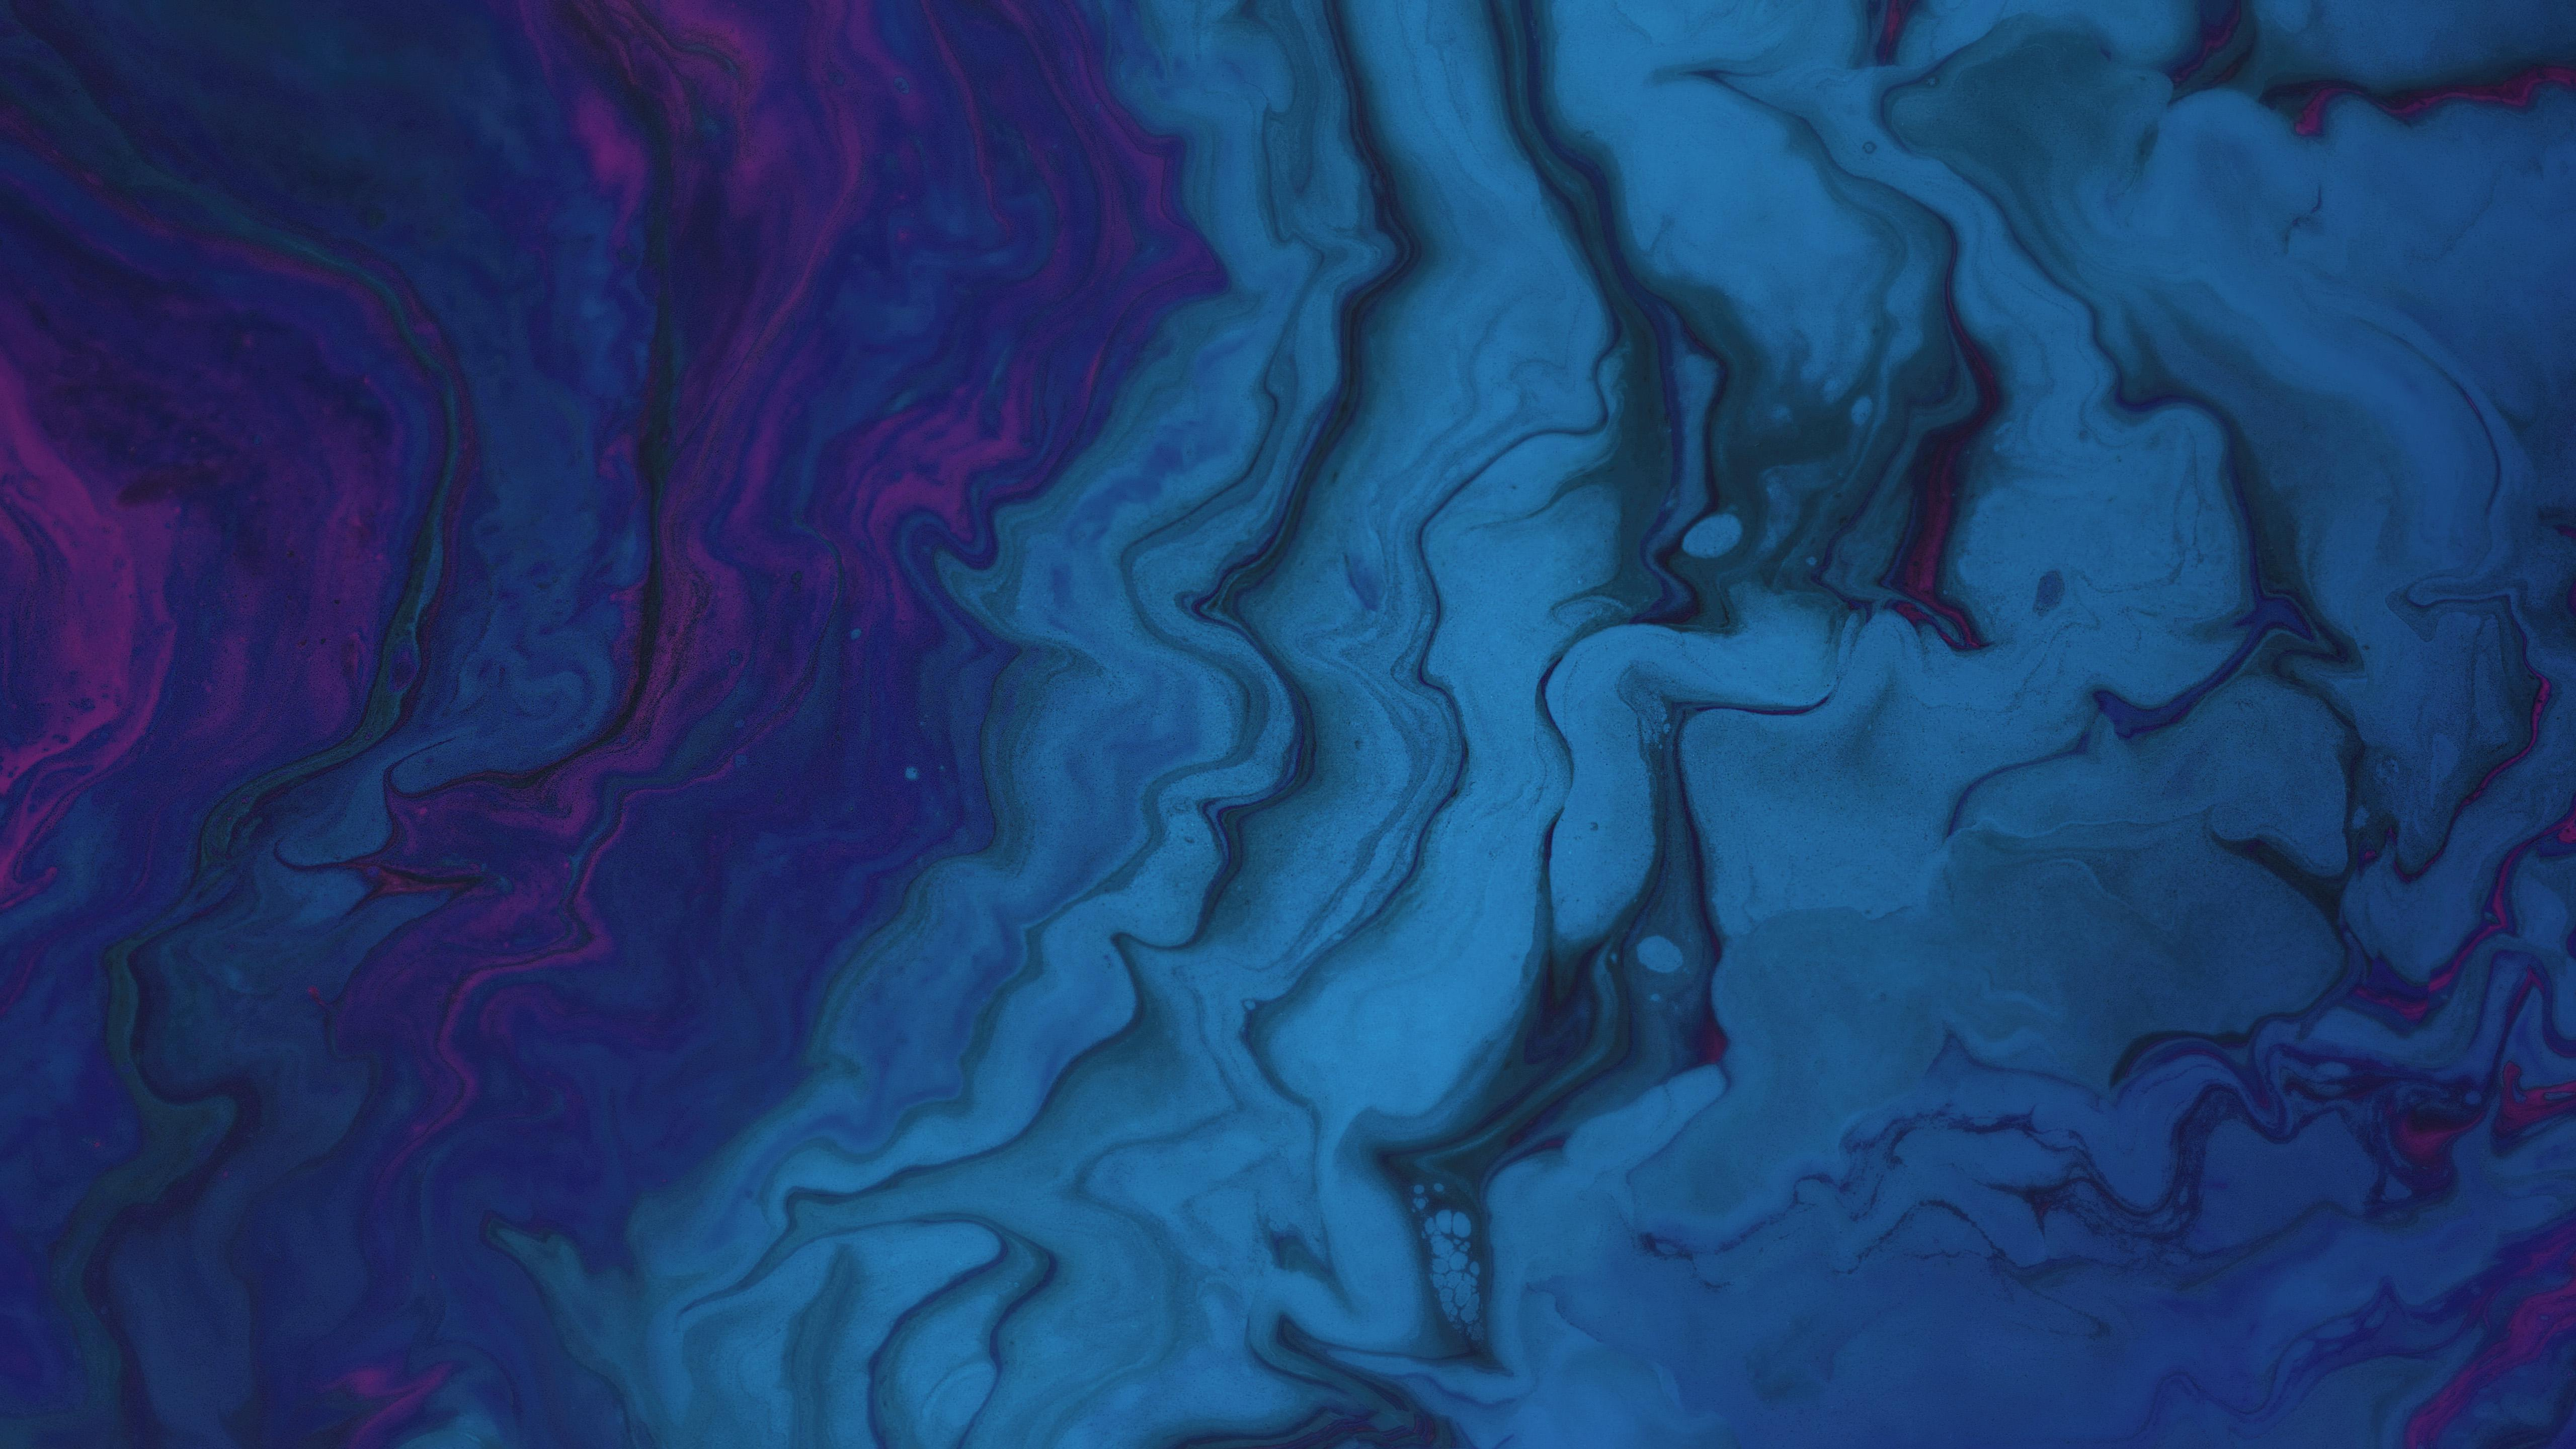 Abstract 4k Wallpapers For Your Desktop Or Mobile Screen Free And Easy To Download